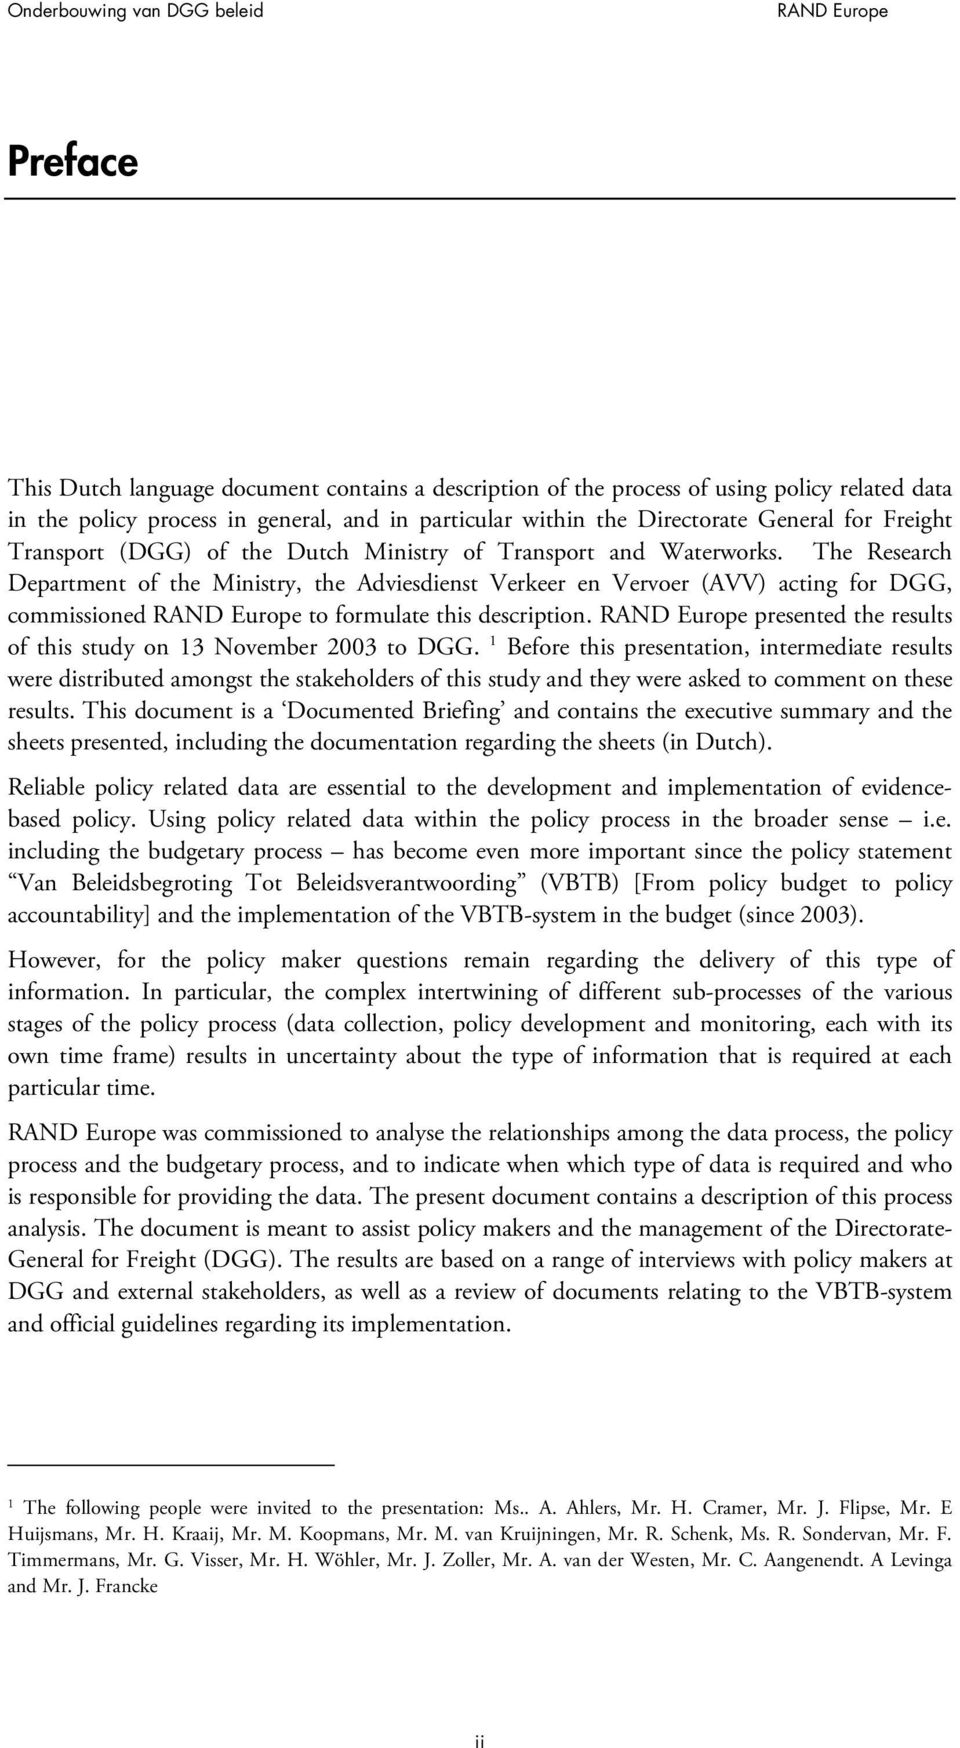 The Research Department of the Ministry, the Adviesdienst Verkeer en Vervoer (AVV) acting for DGG, commissioned to formulate this description.